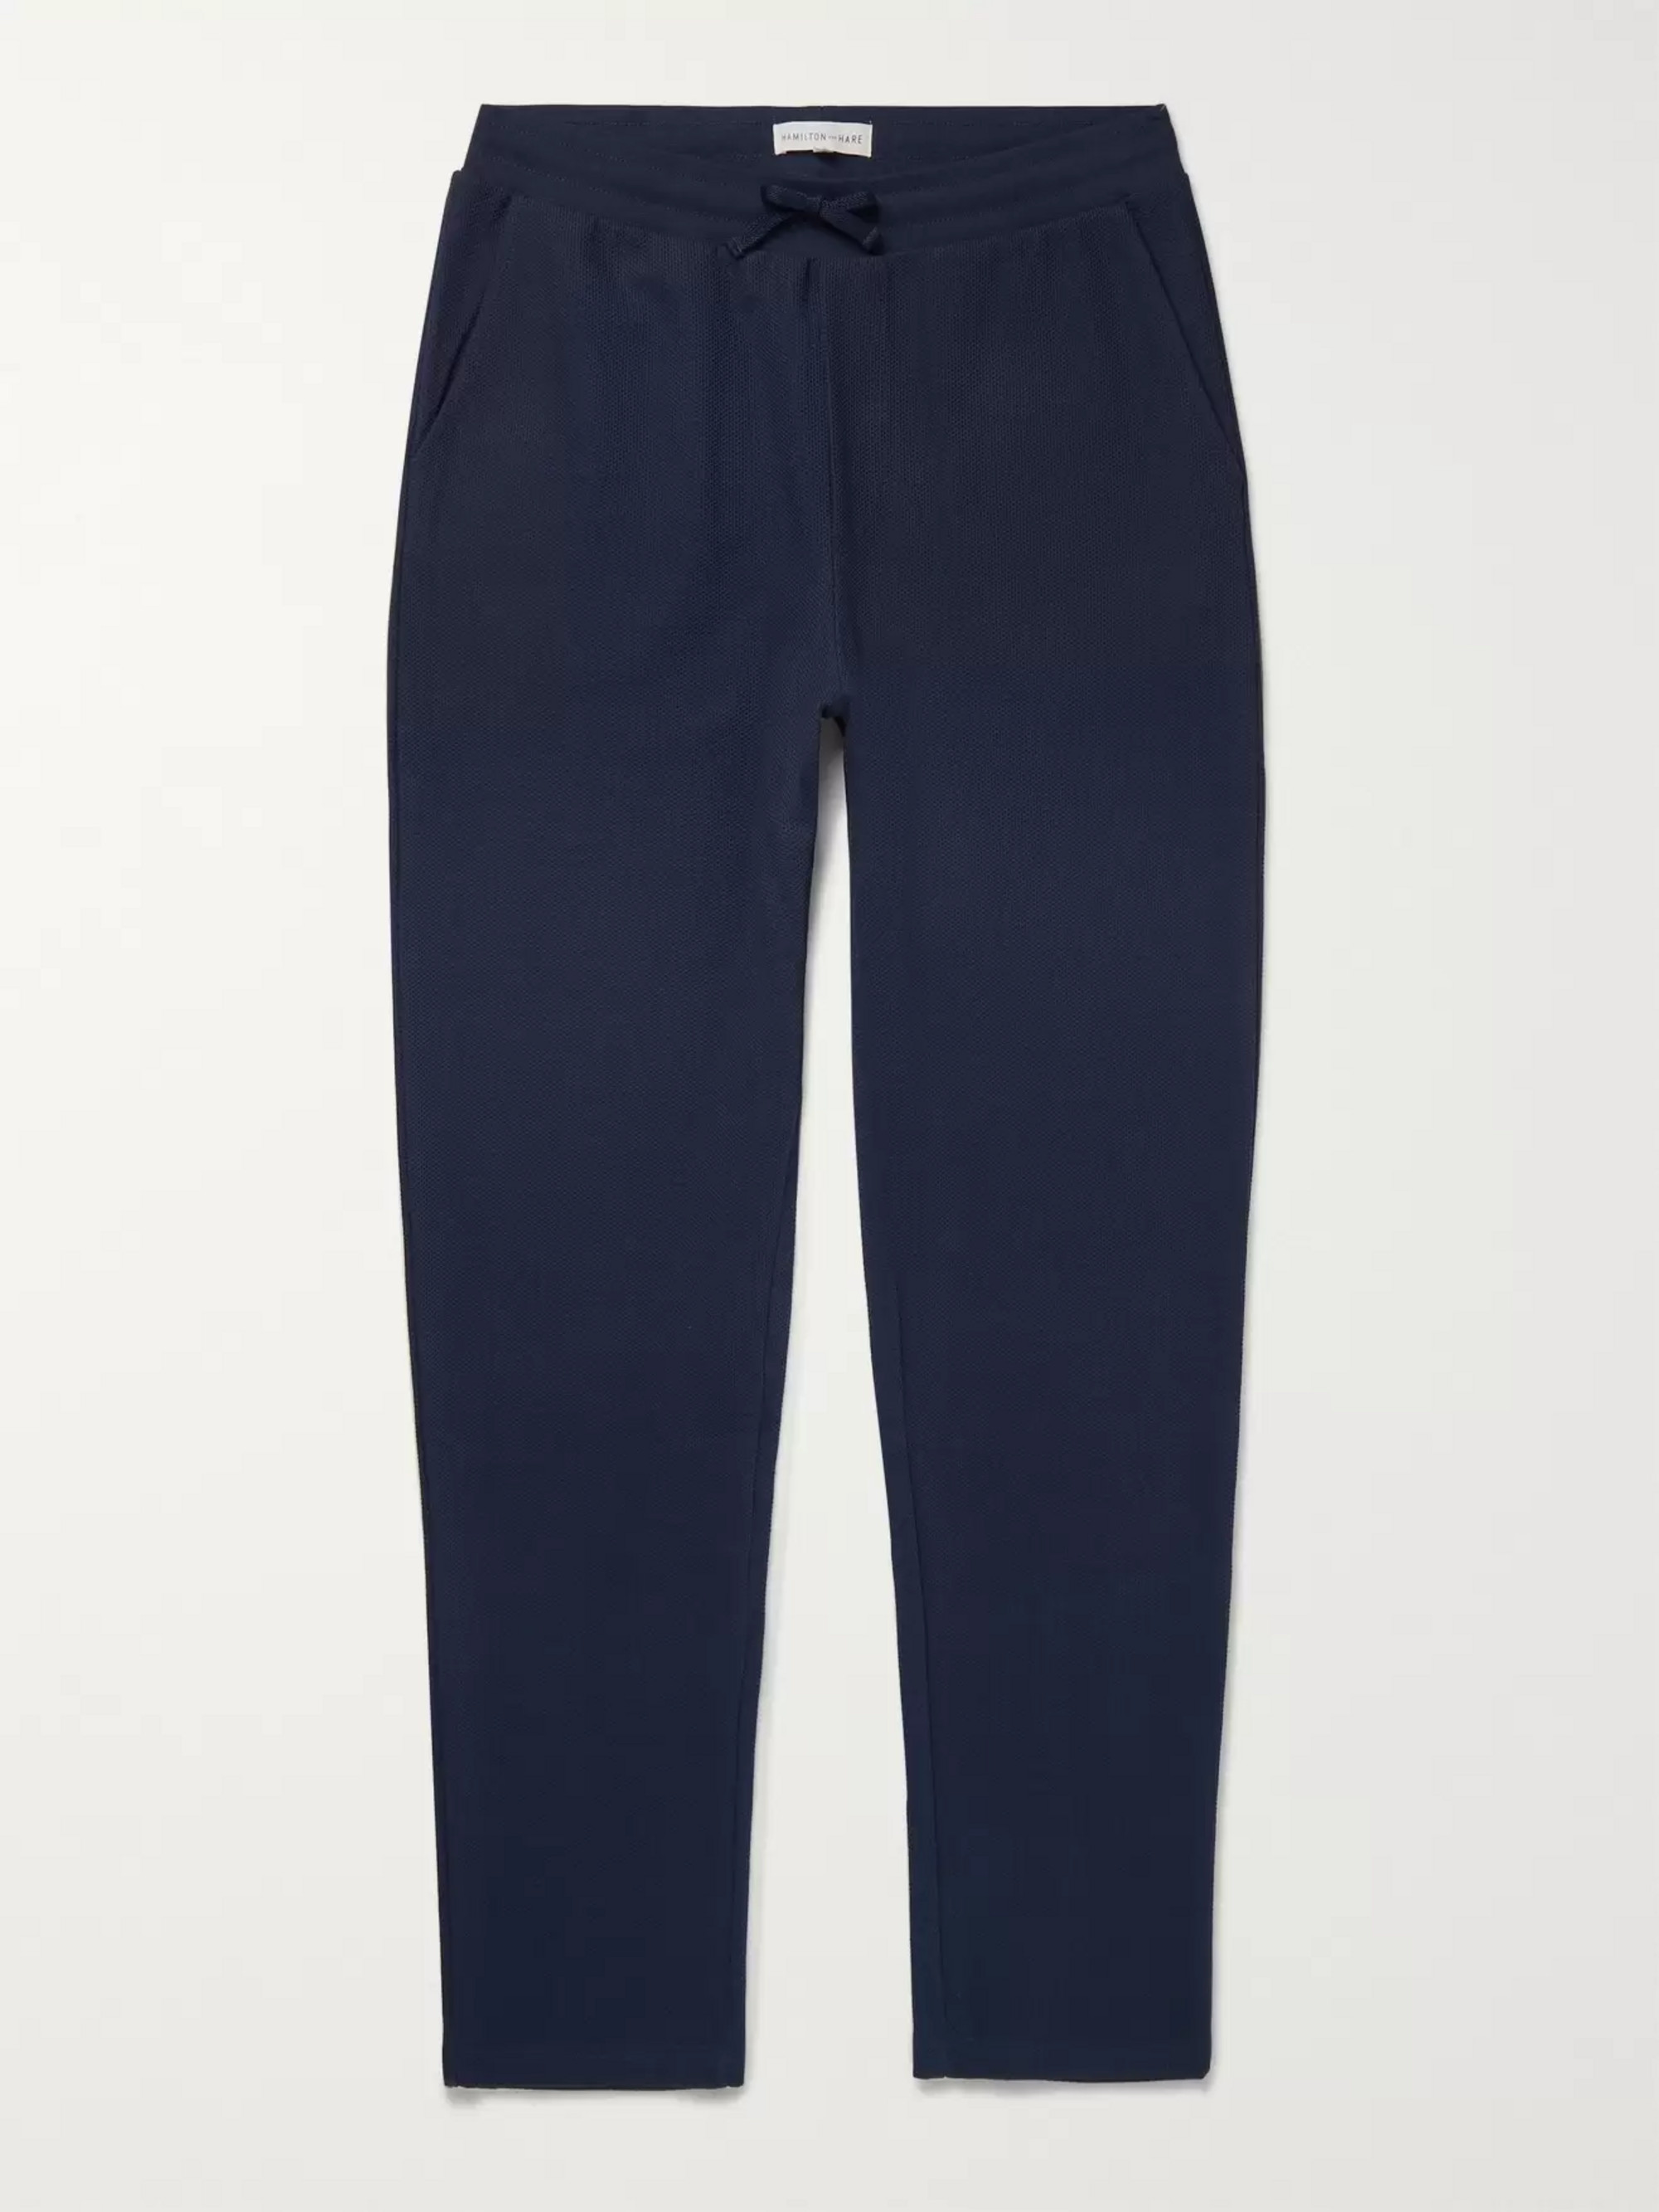 Hamilton and Hare Timeout Birdseye Cotton Sweatpants